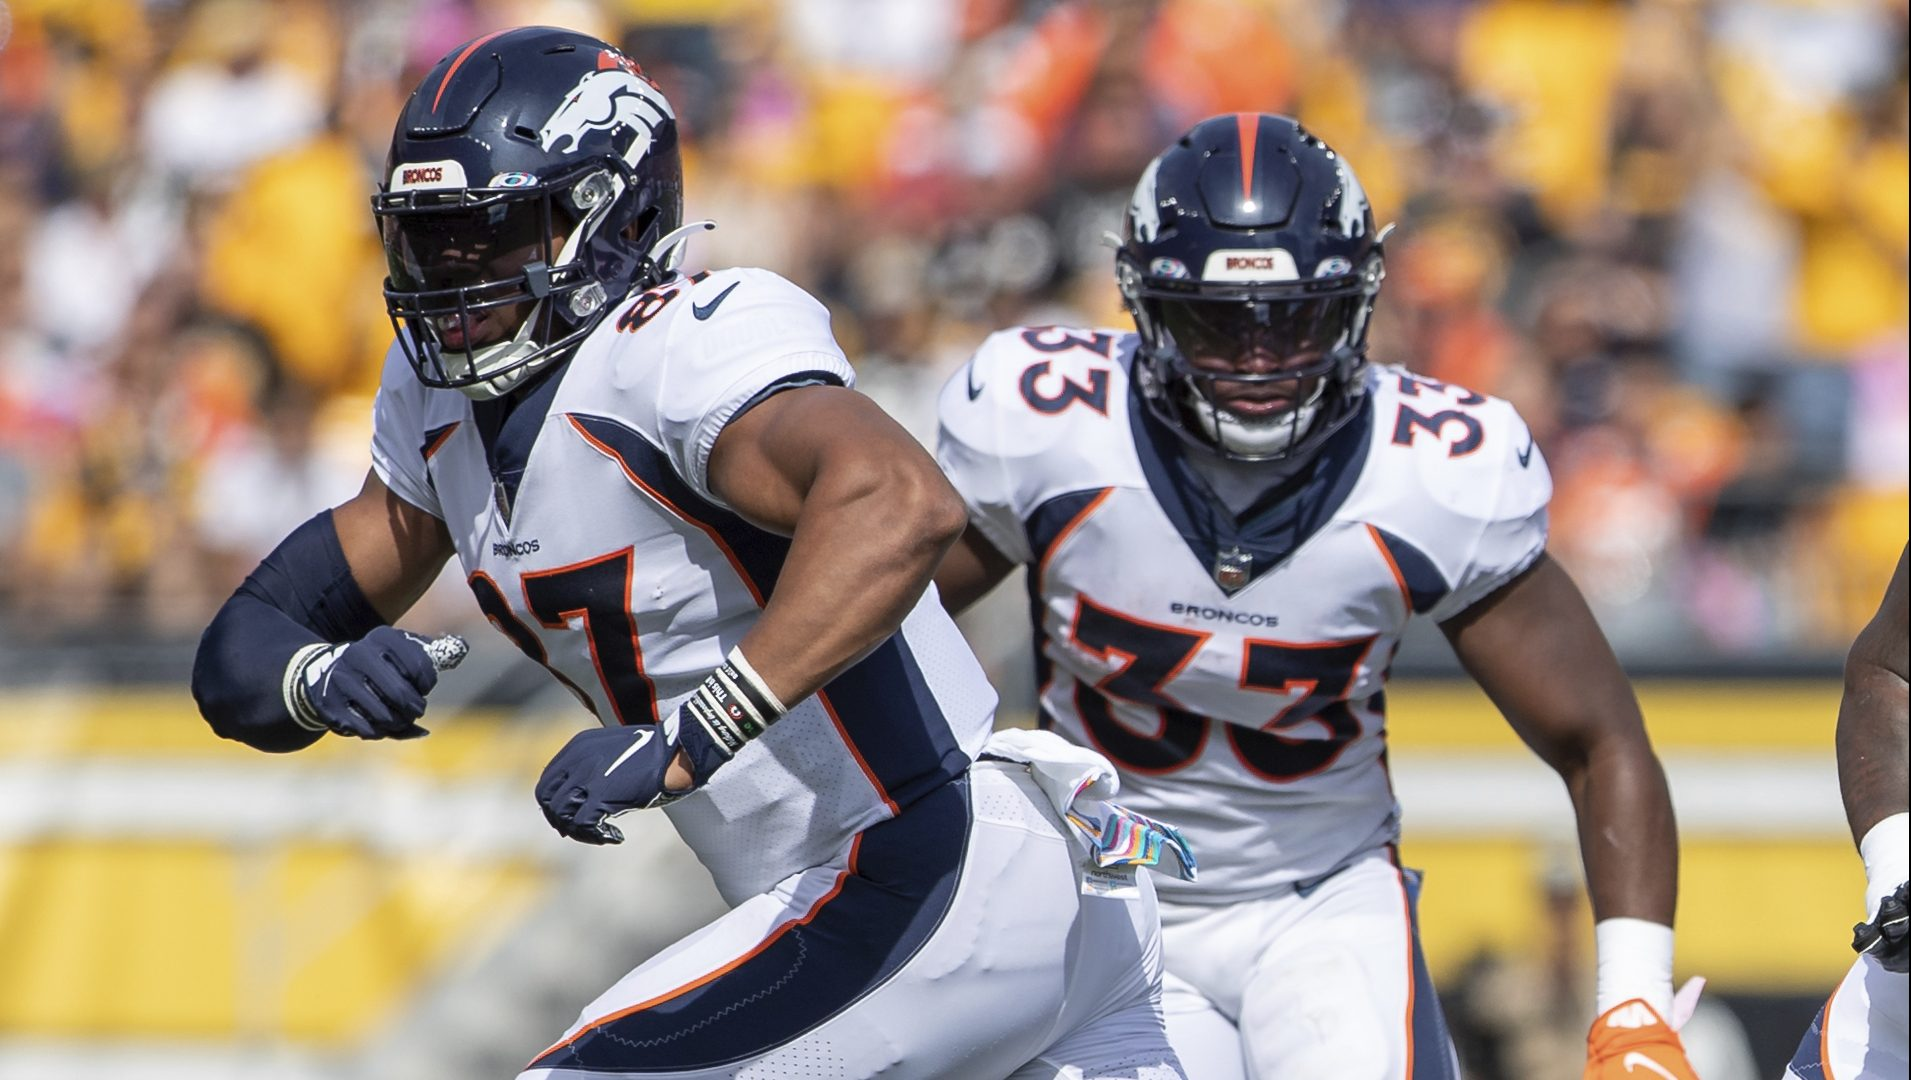 Denver Broncos tight end Noah Fant (87) looks to block during an NFL football game, Sunday, Oct. 10, 2021 in Pittsburgh.